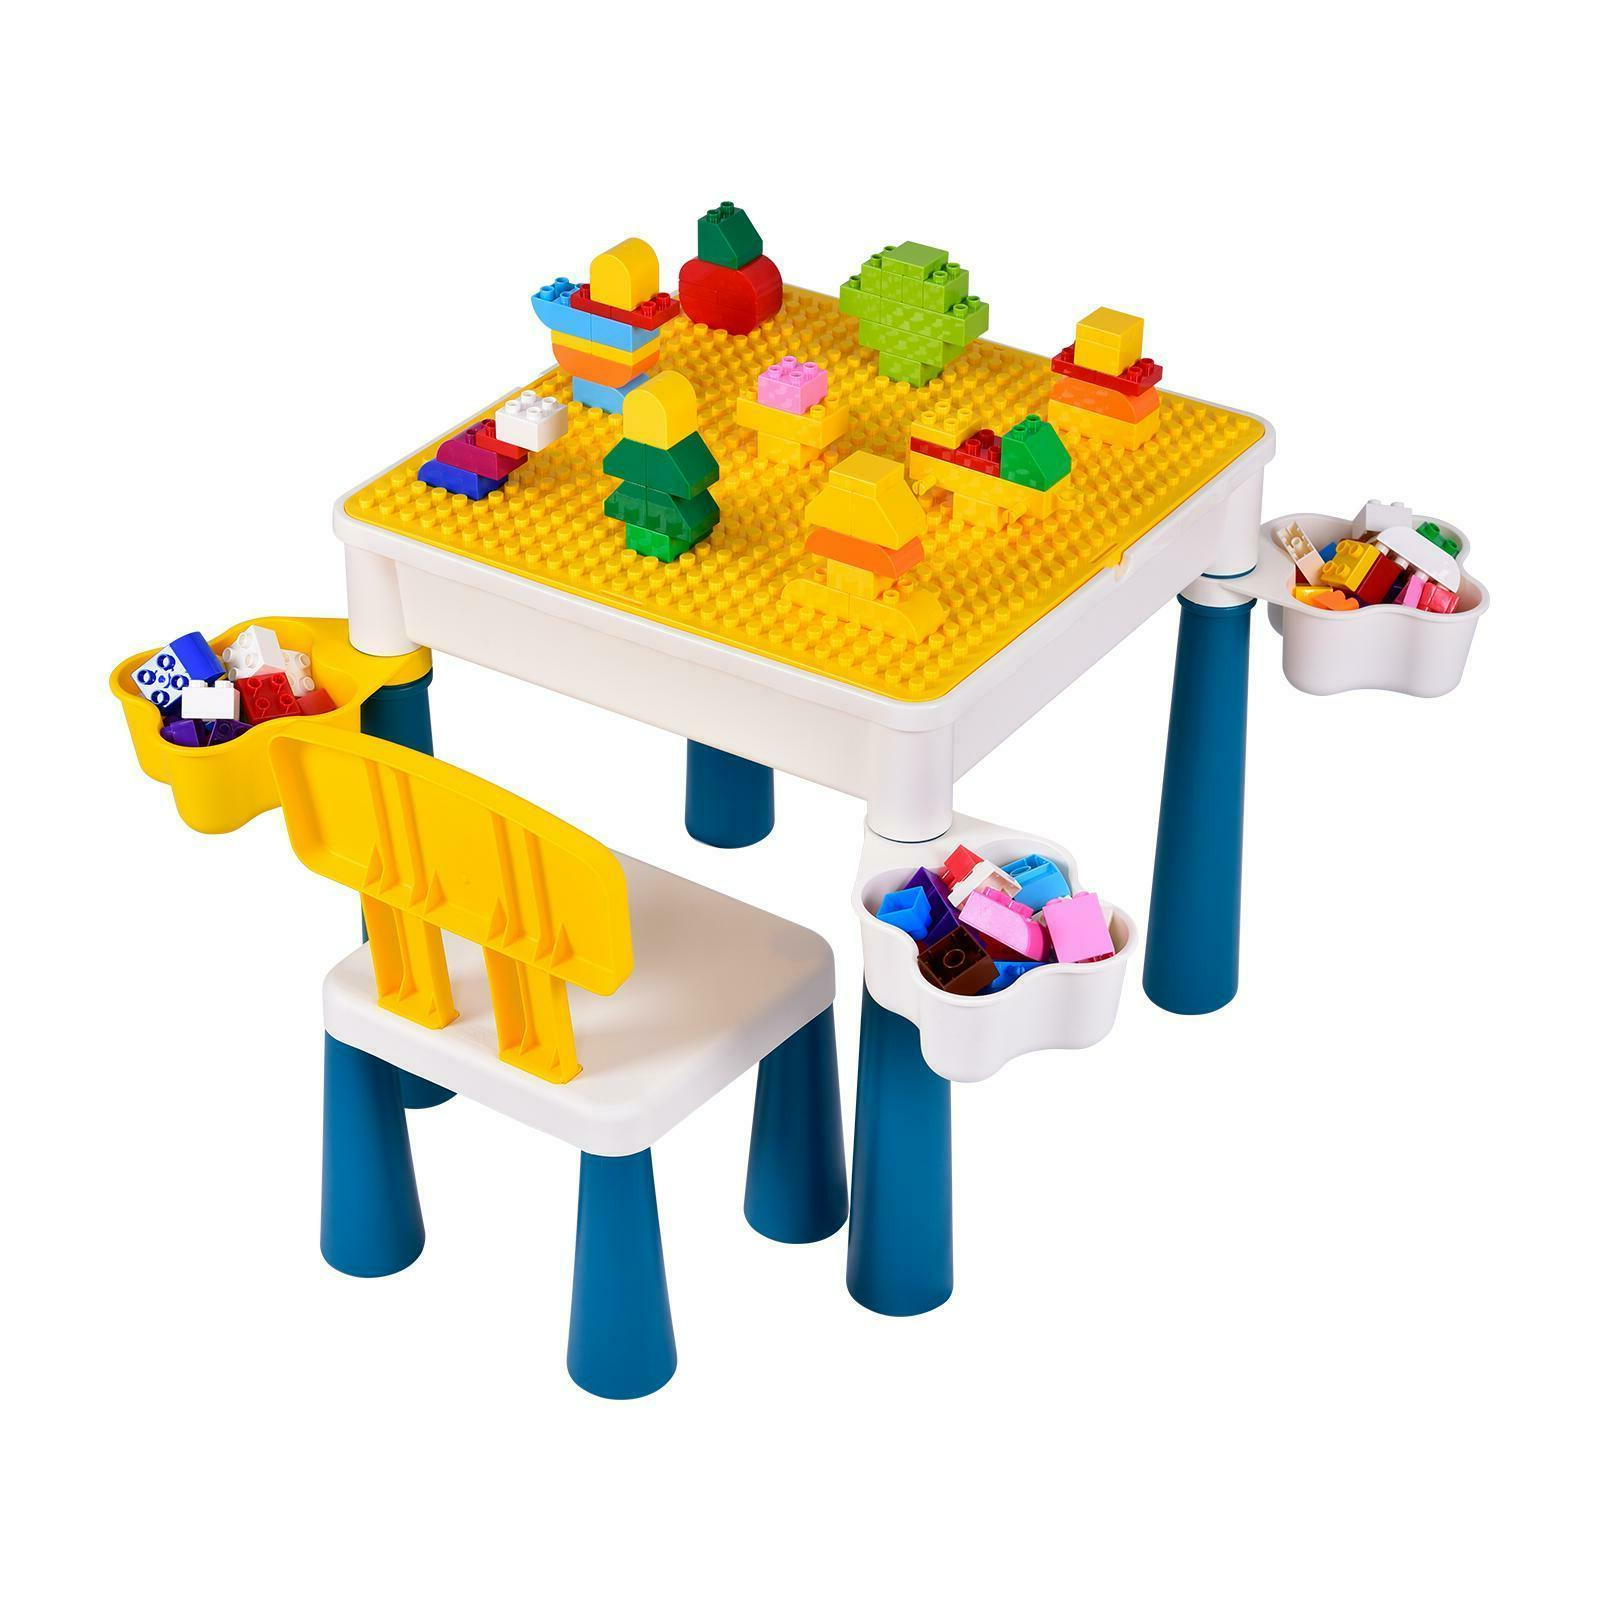 Activity For Building Block Table W/ Chair